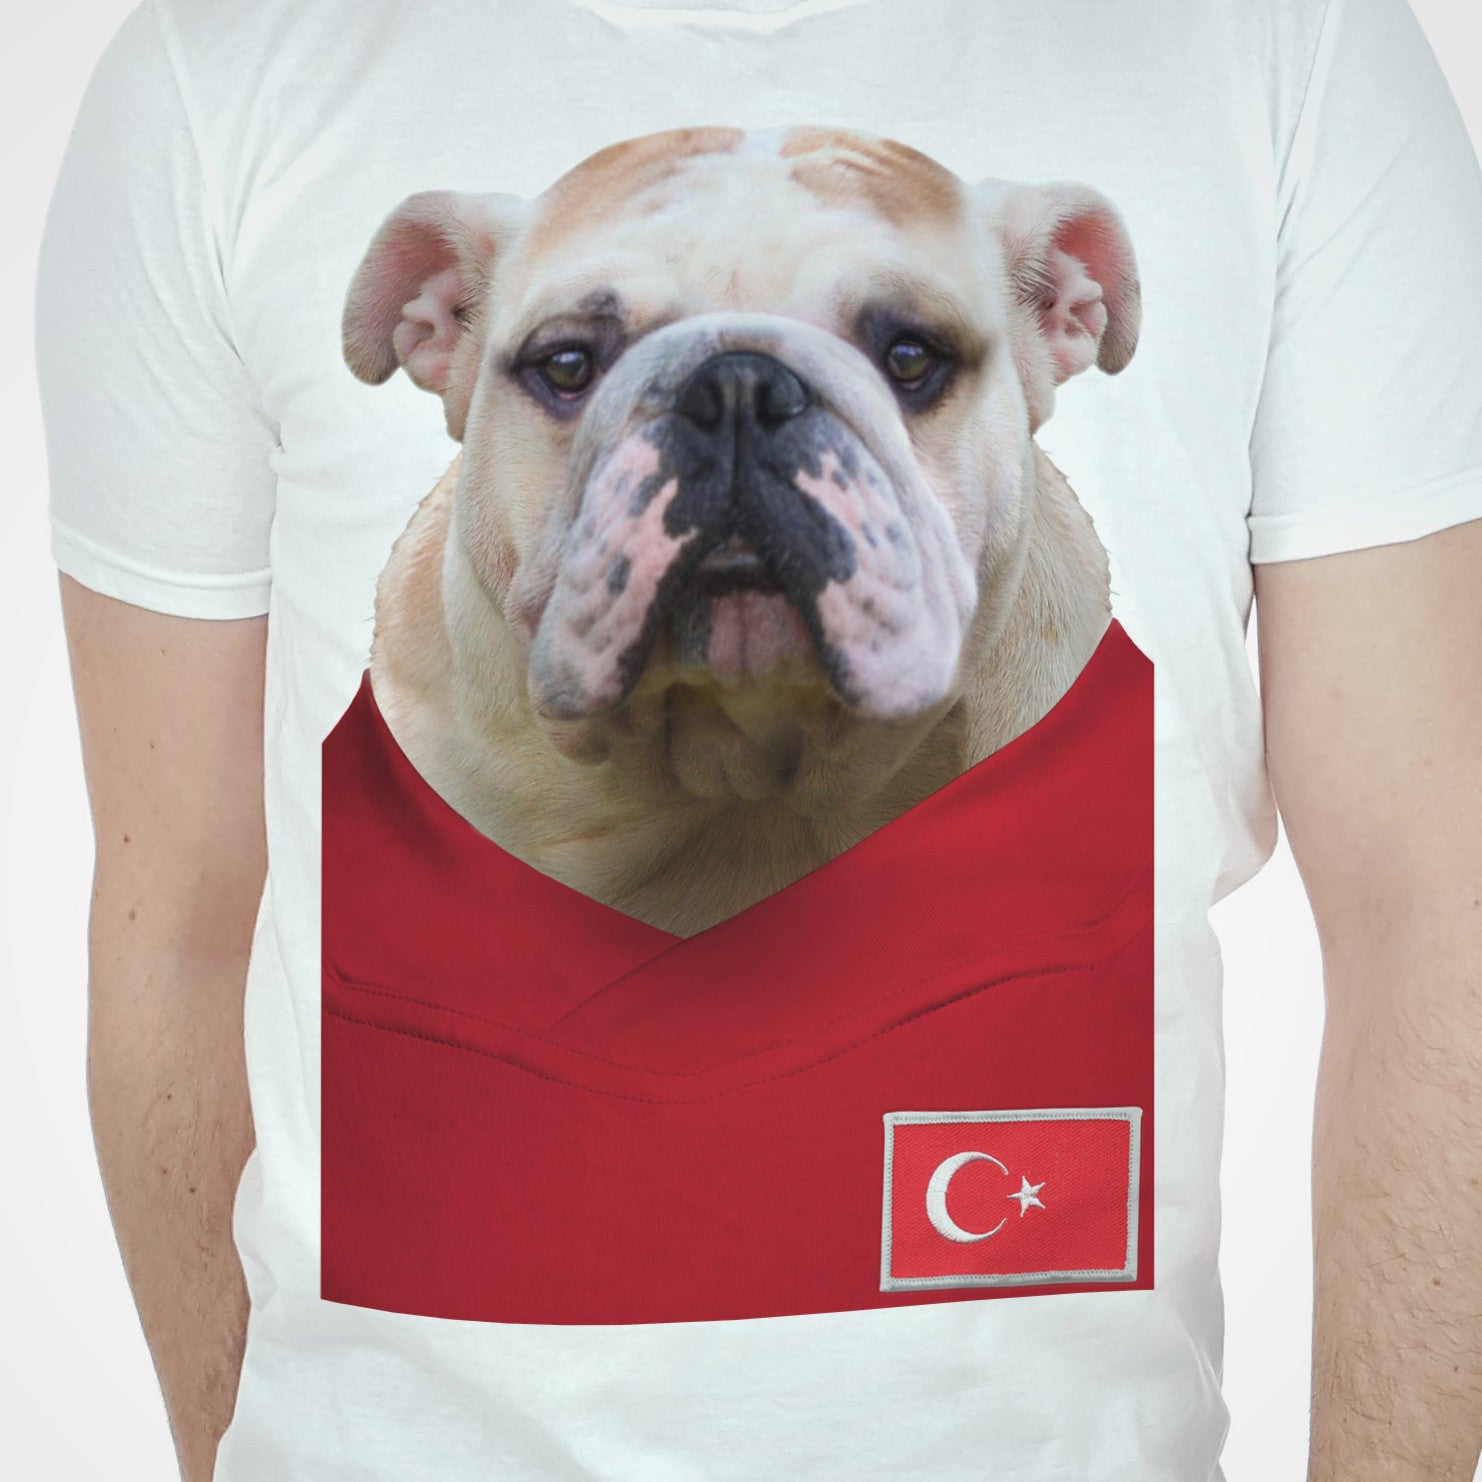 Turkey Football Bulldog T-shirt